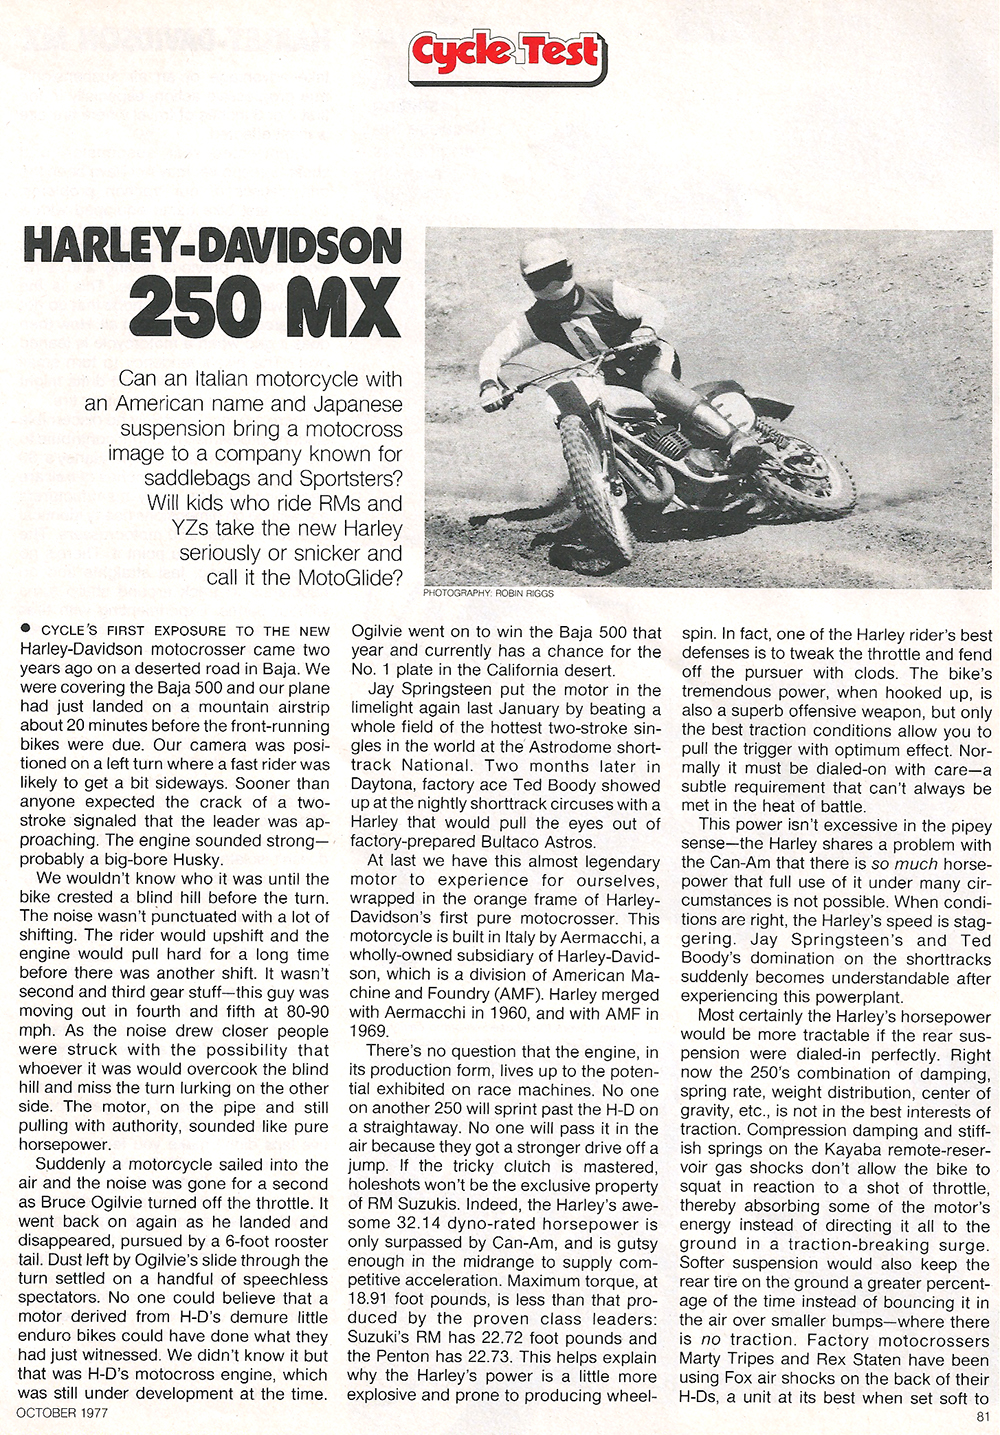 1977 Harley Davidson 250 MX road test 2.jpg